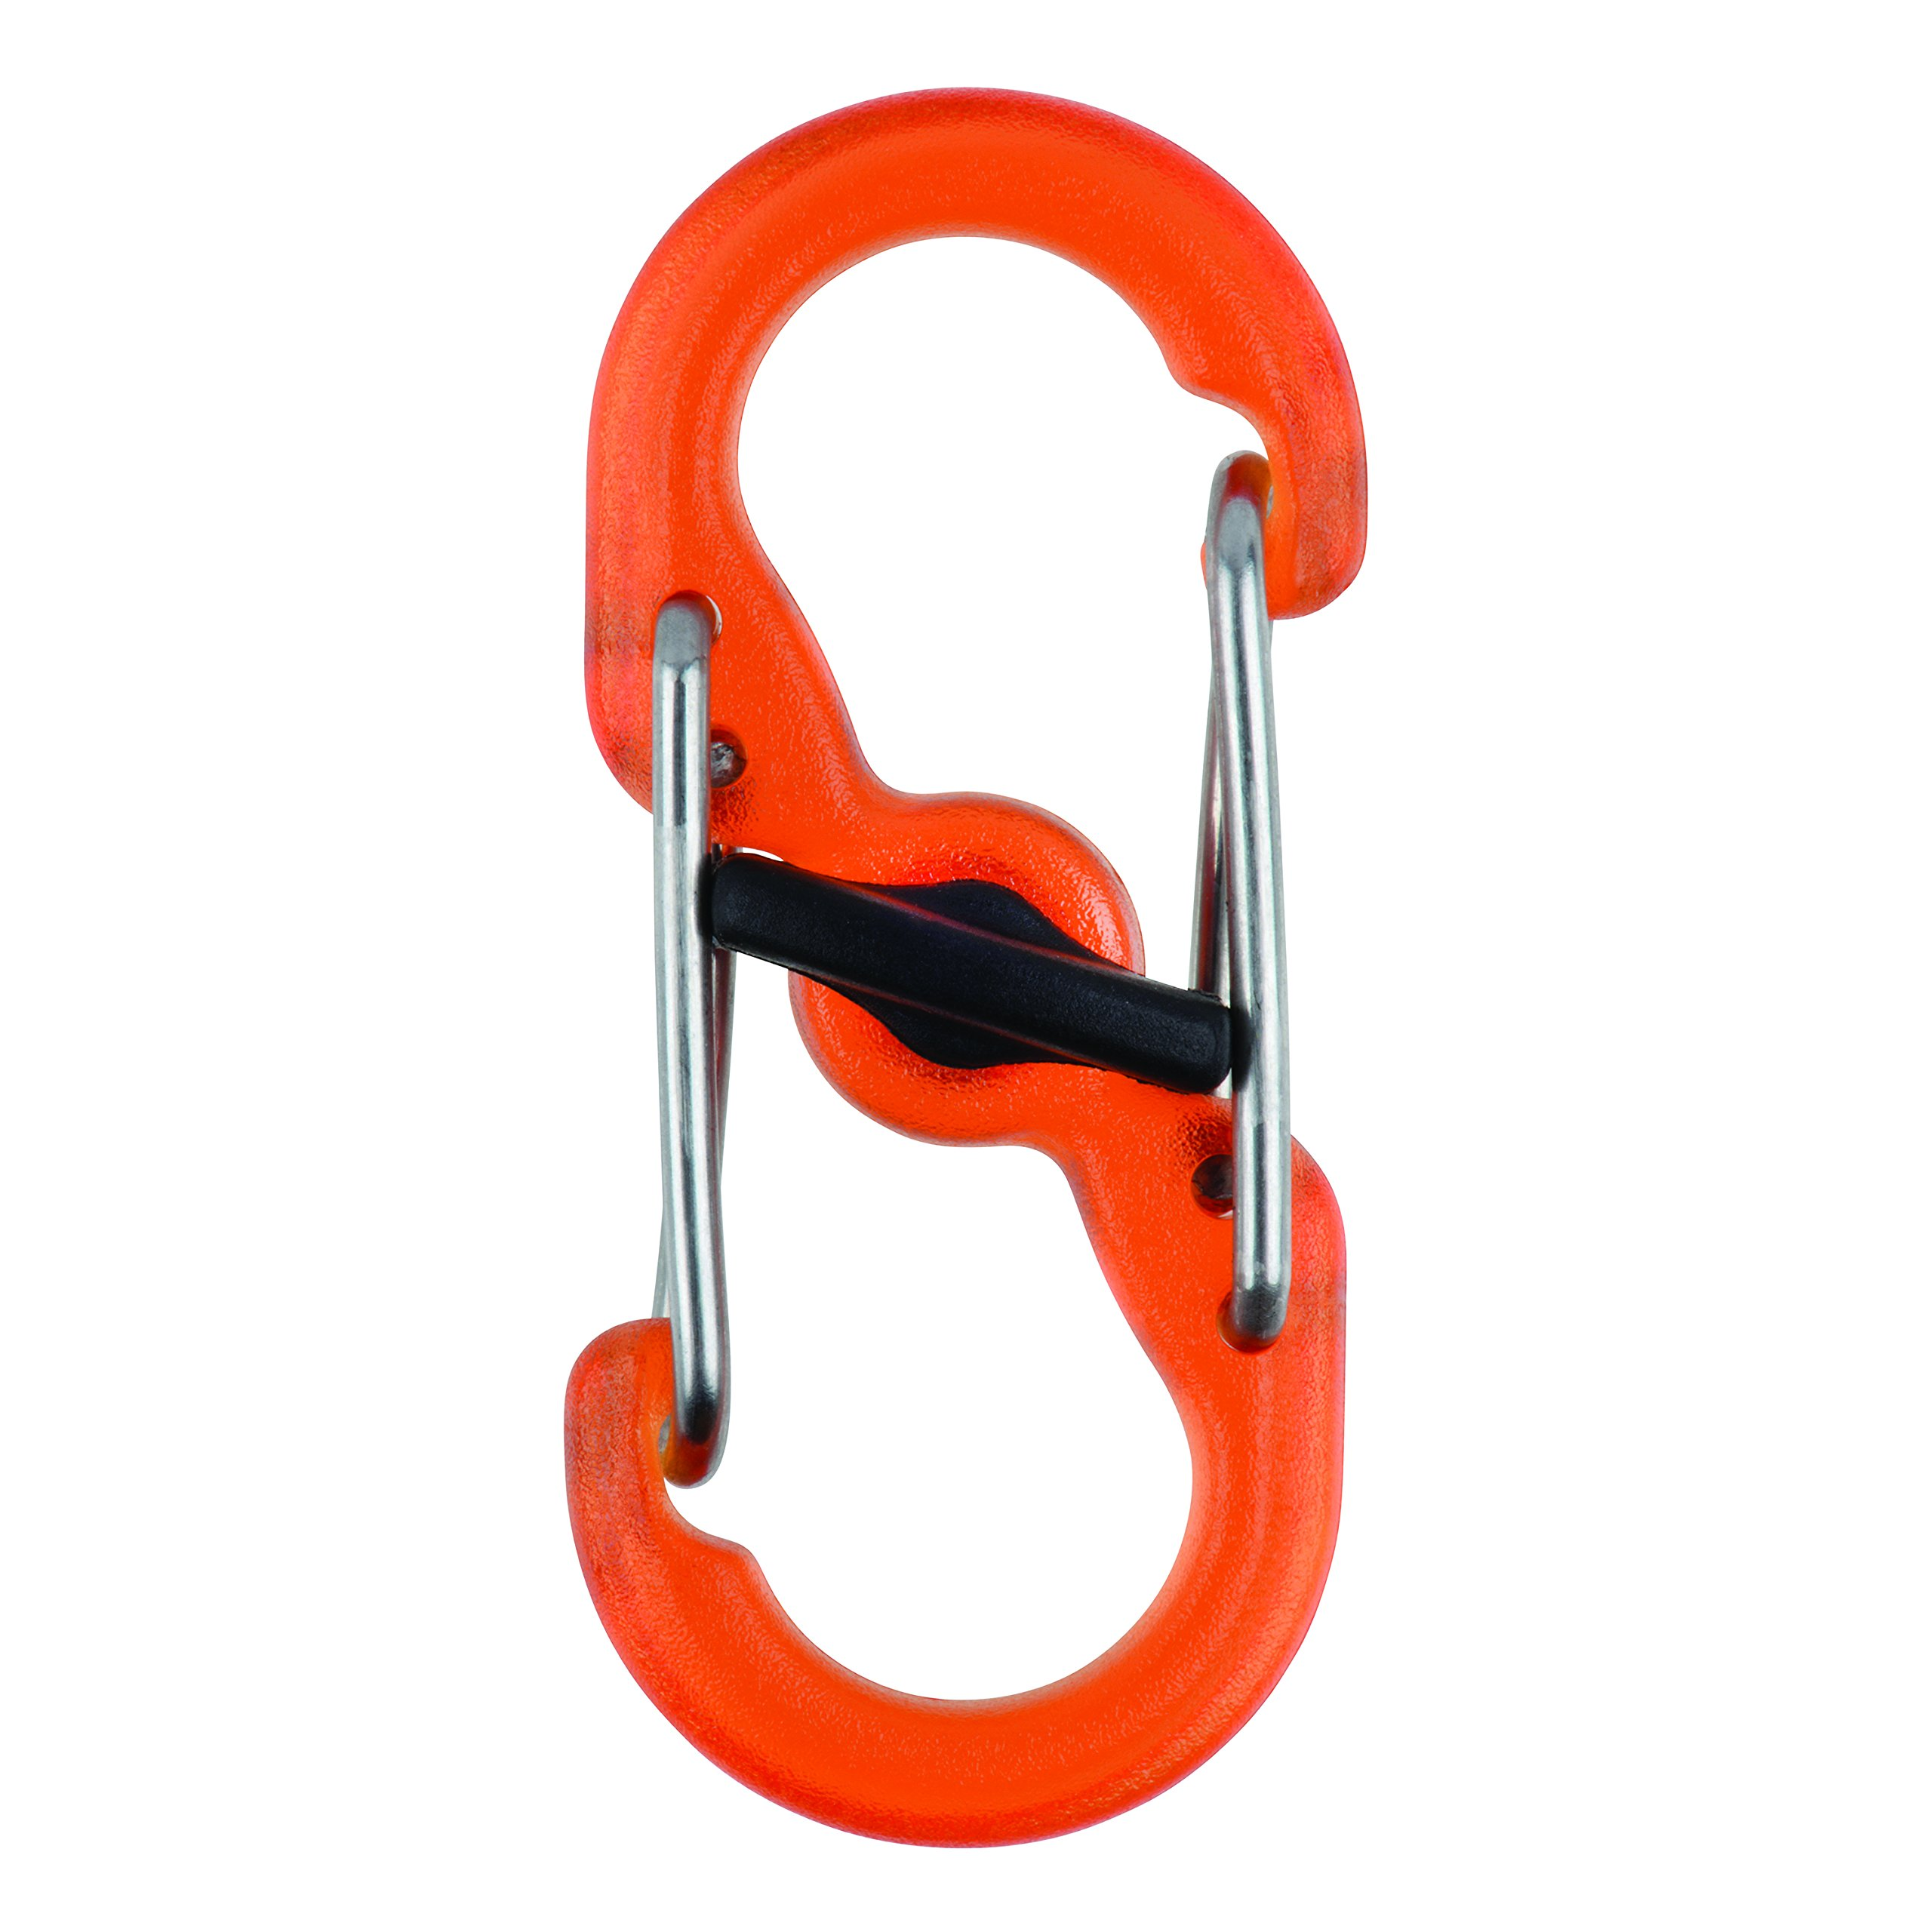 NITE IZE LSBPM-19T-2R3 S Biner MicroLock Polycarbonate (2 PACK) Orange